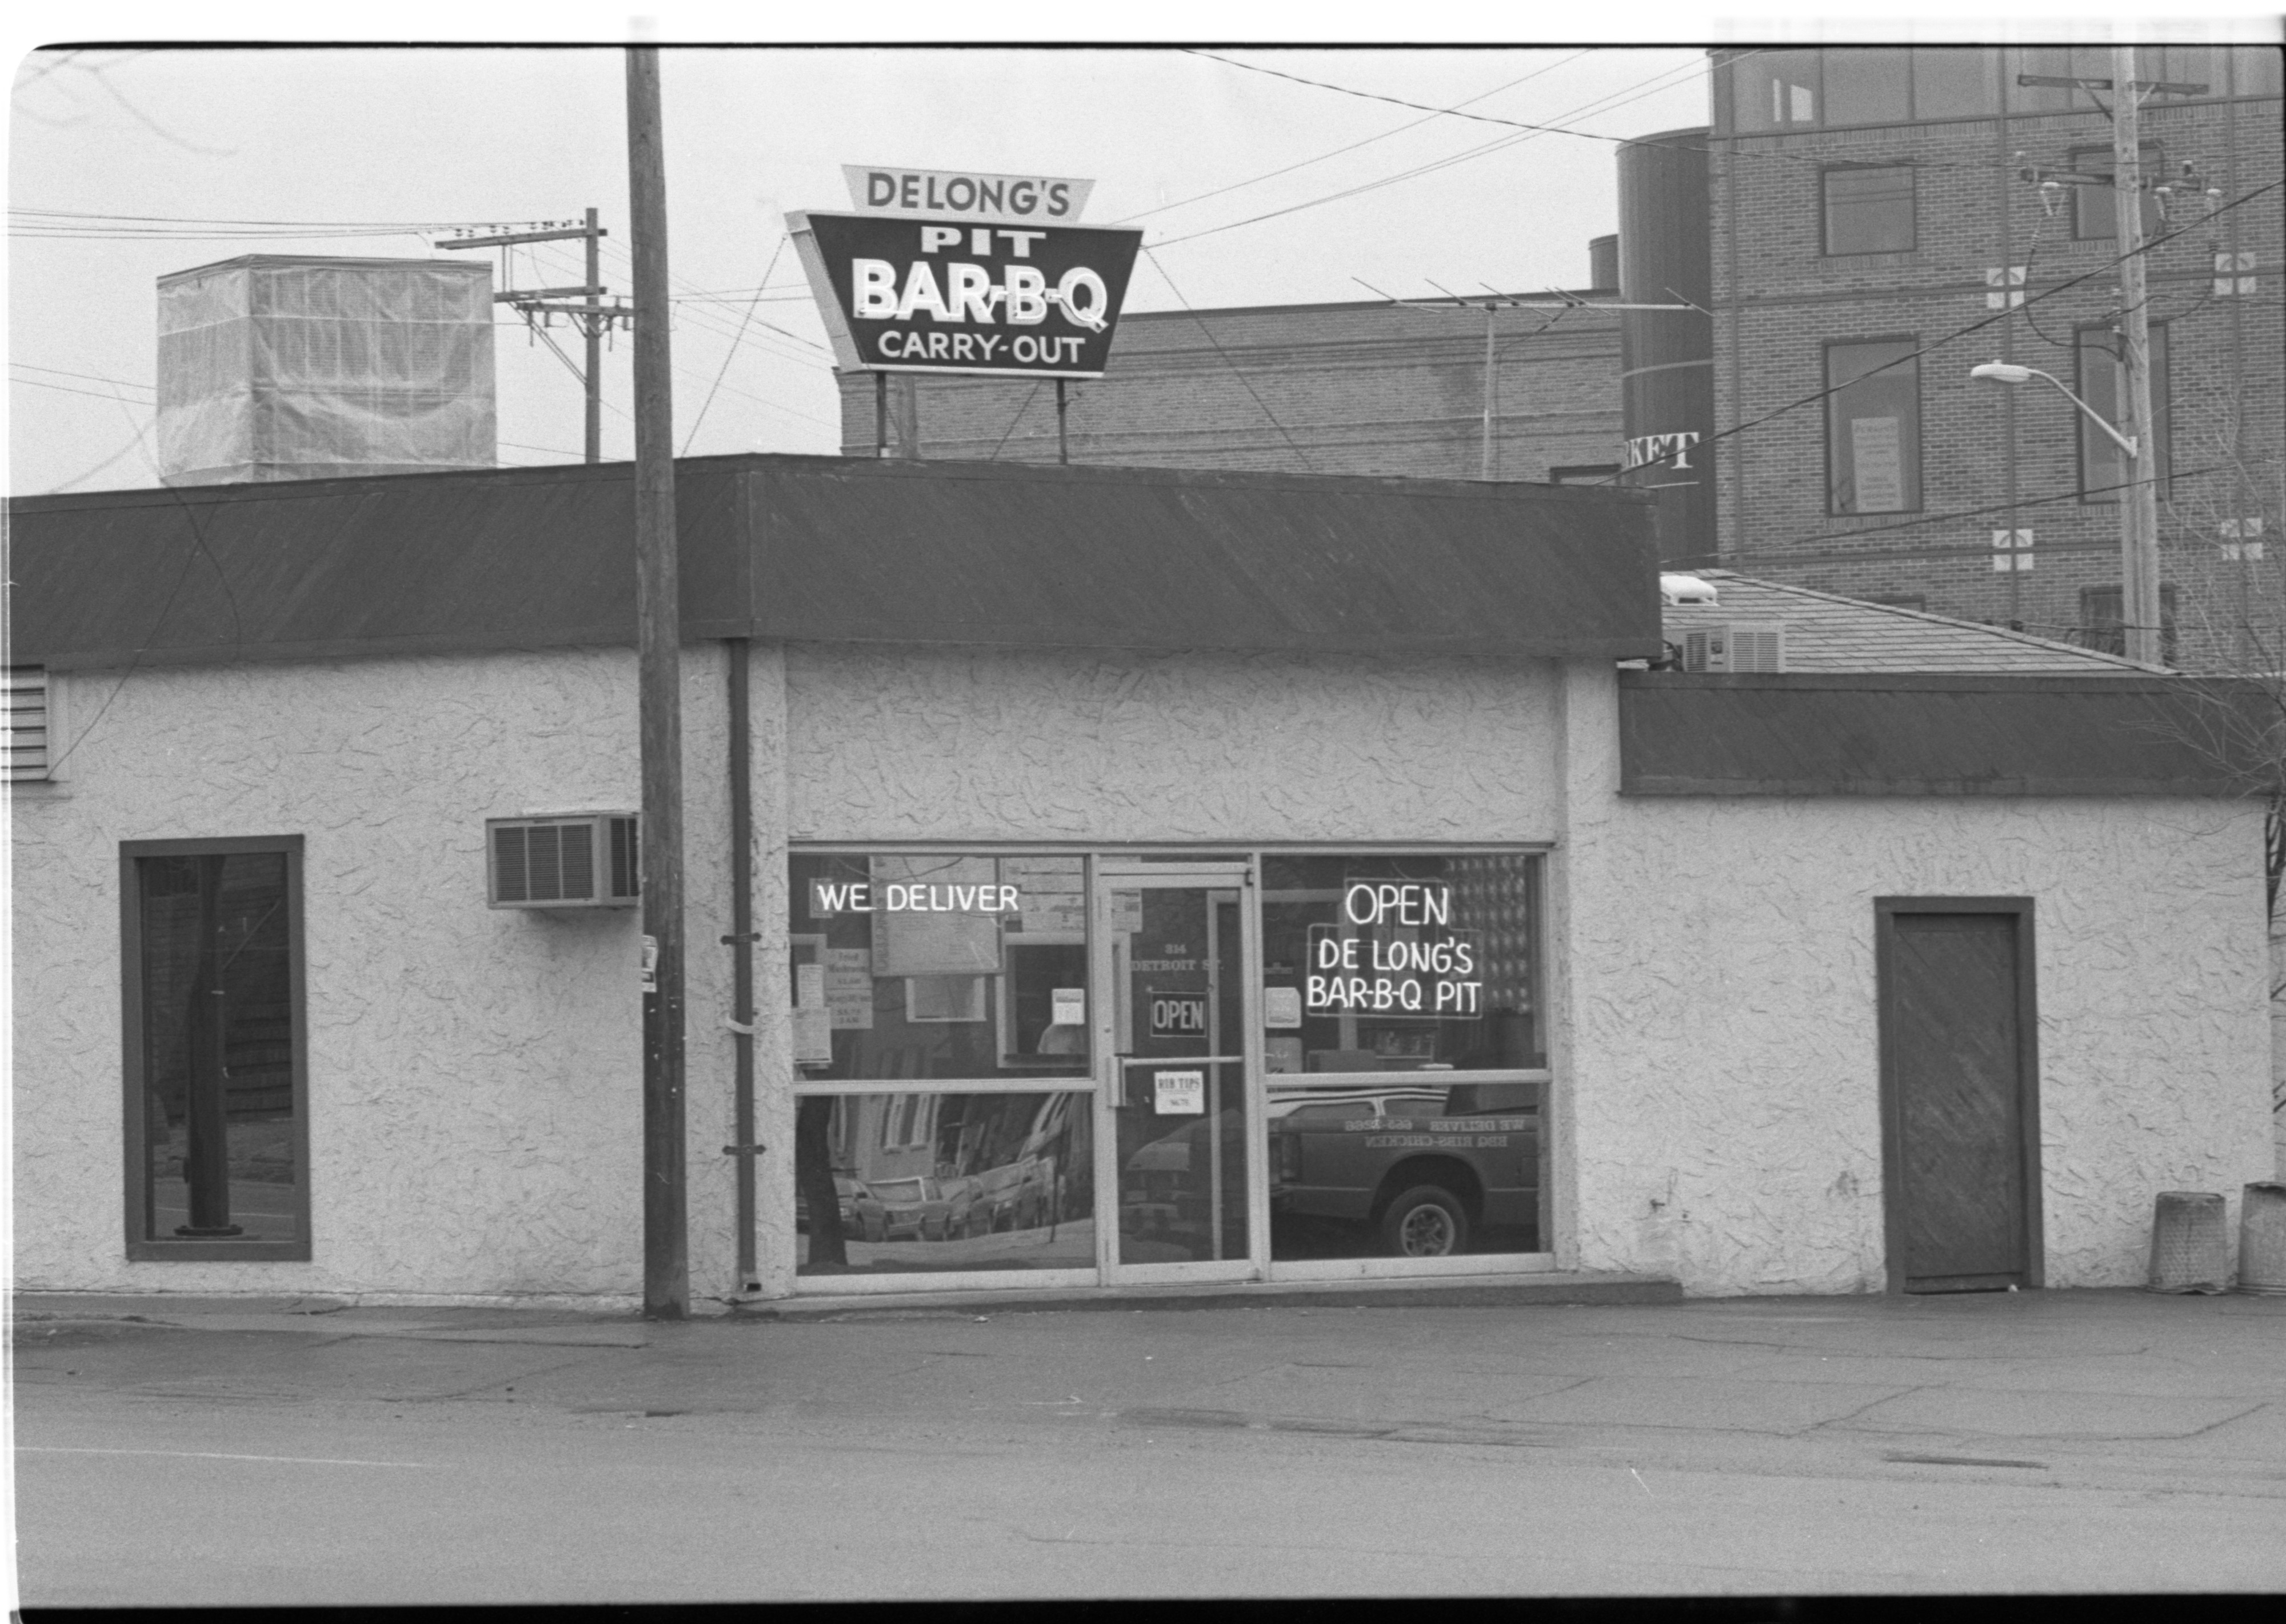 DeLong's Bar-B-Q Pit, February 1992 image